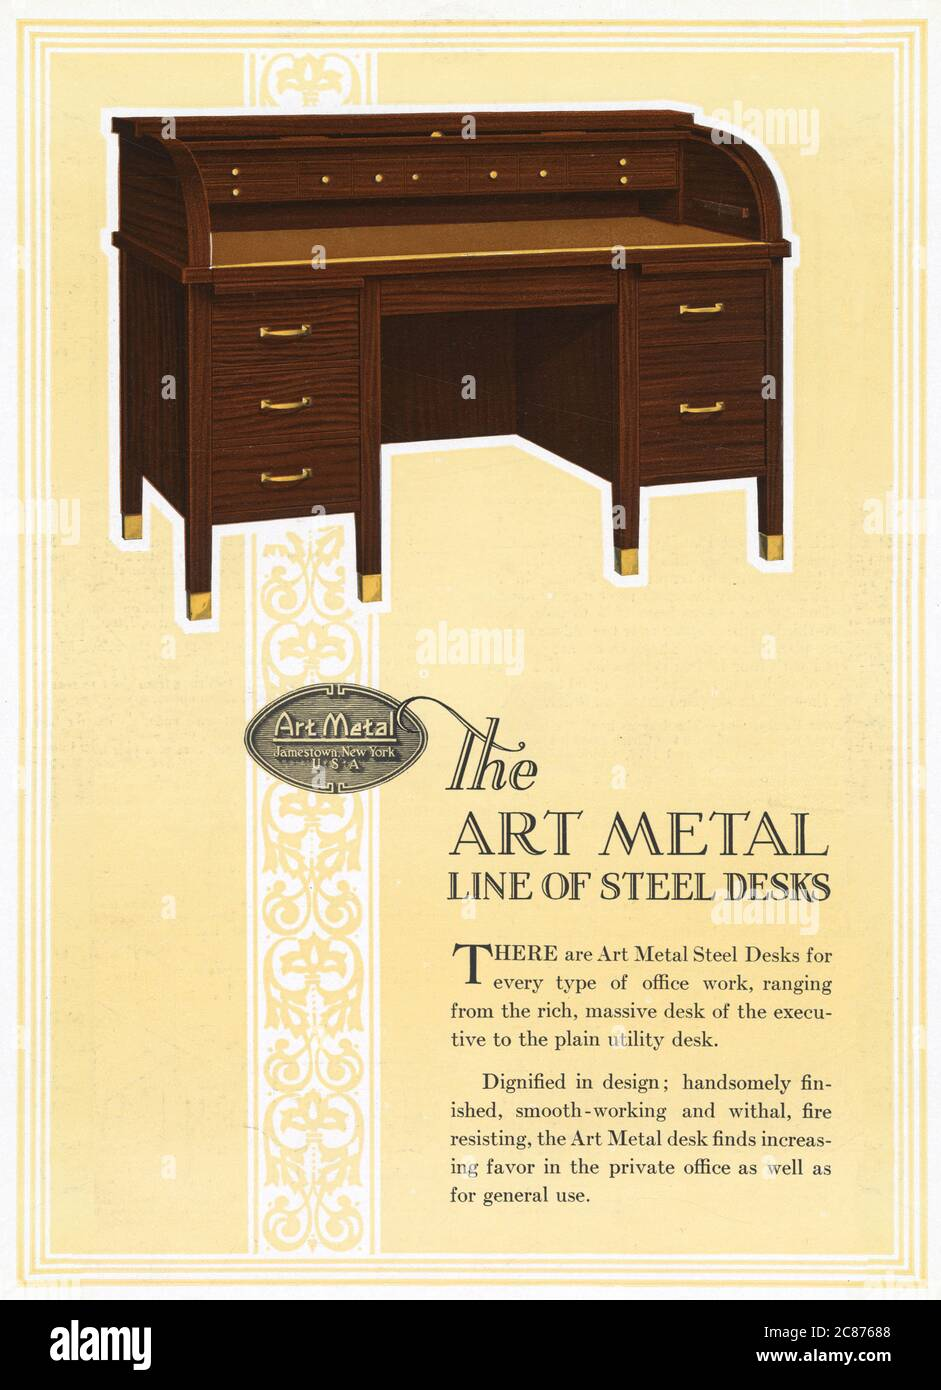 Art Metal Steel Office Equipment, Jamestown, New York, USA - The Art Metal Line of Steel Desks, seen here with Mahogany finish. Ranging from the rich, massive desk of the executive to the plain utility desk.        Date: 1926 Stock Photo